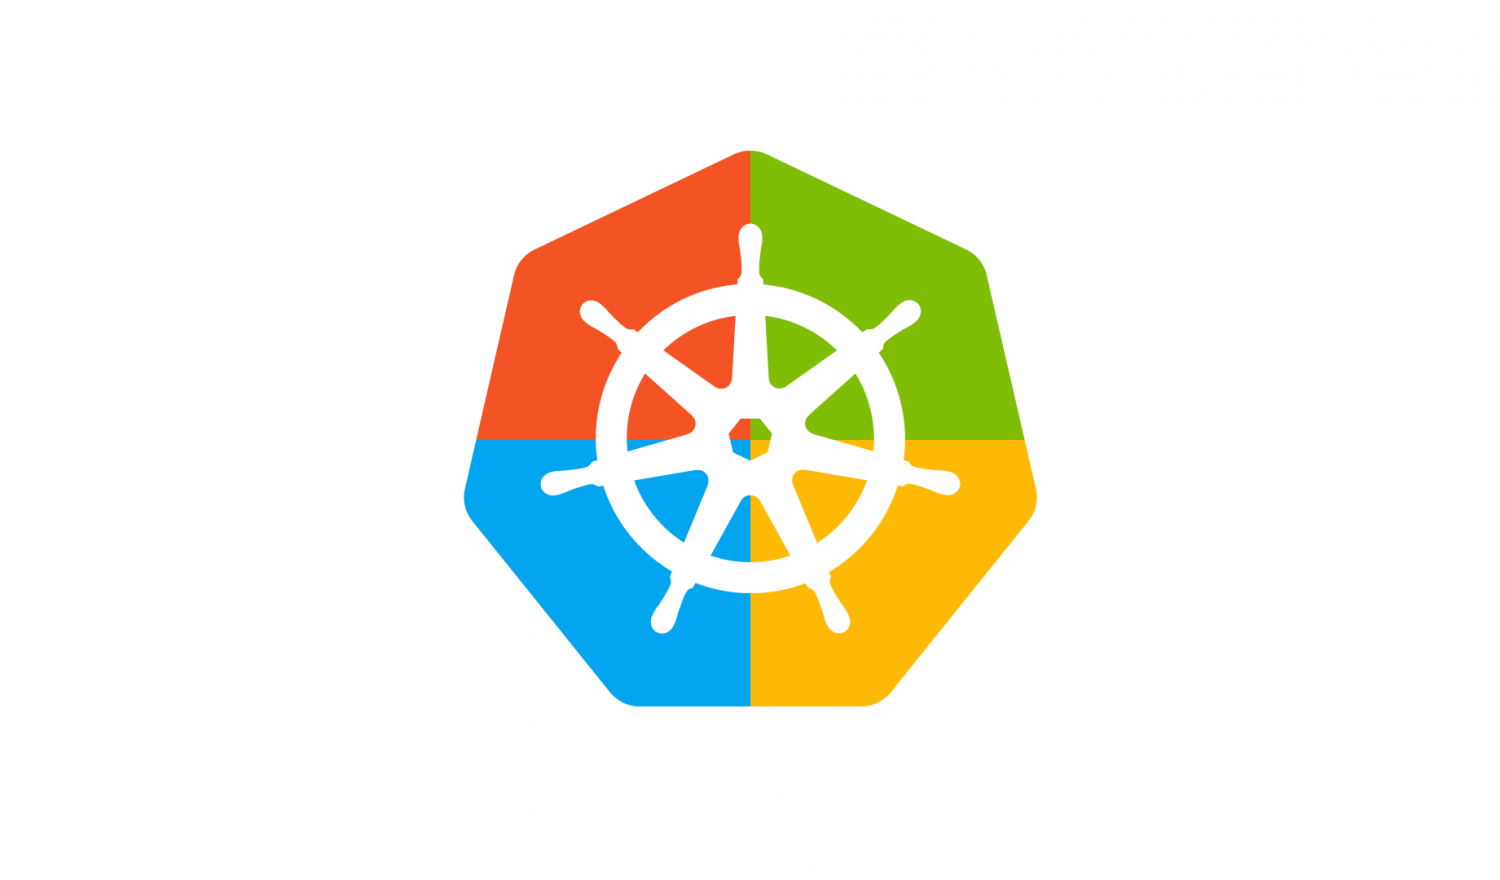 The Kubernetes Logo in Windows colors